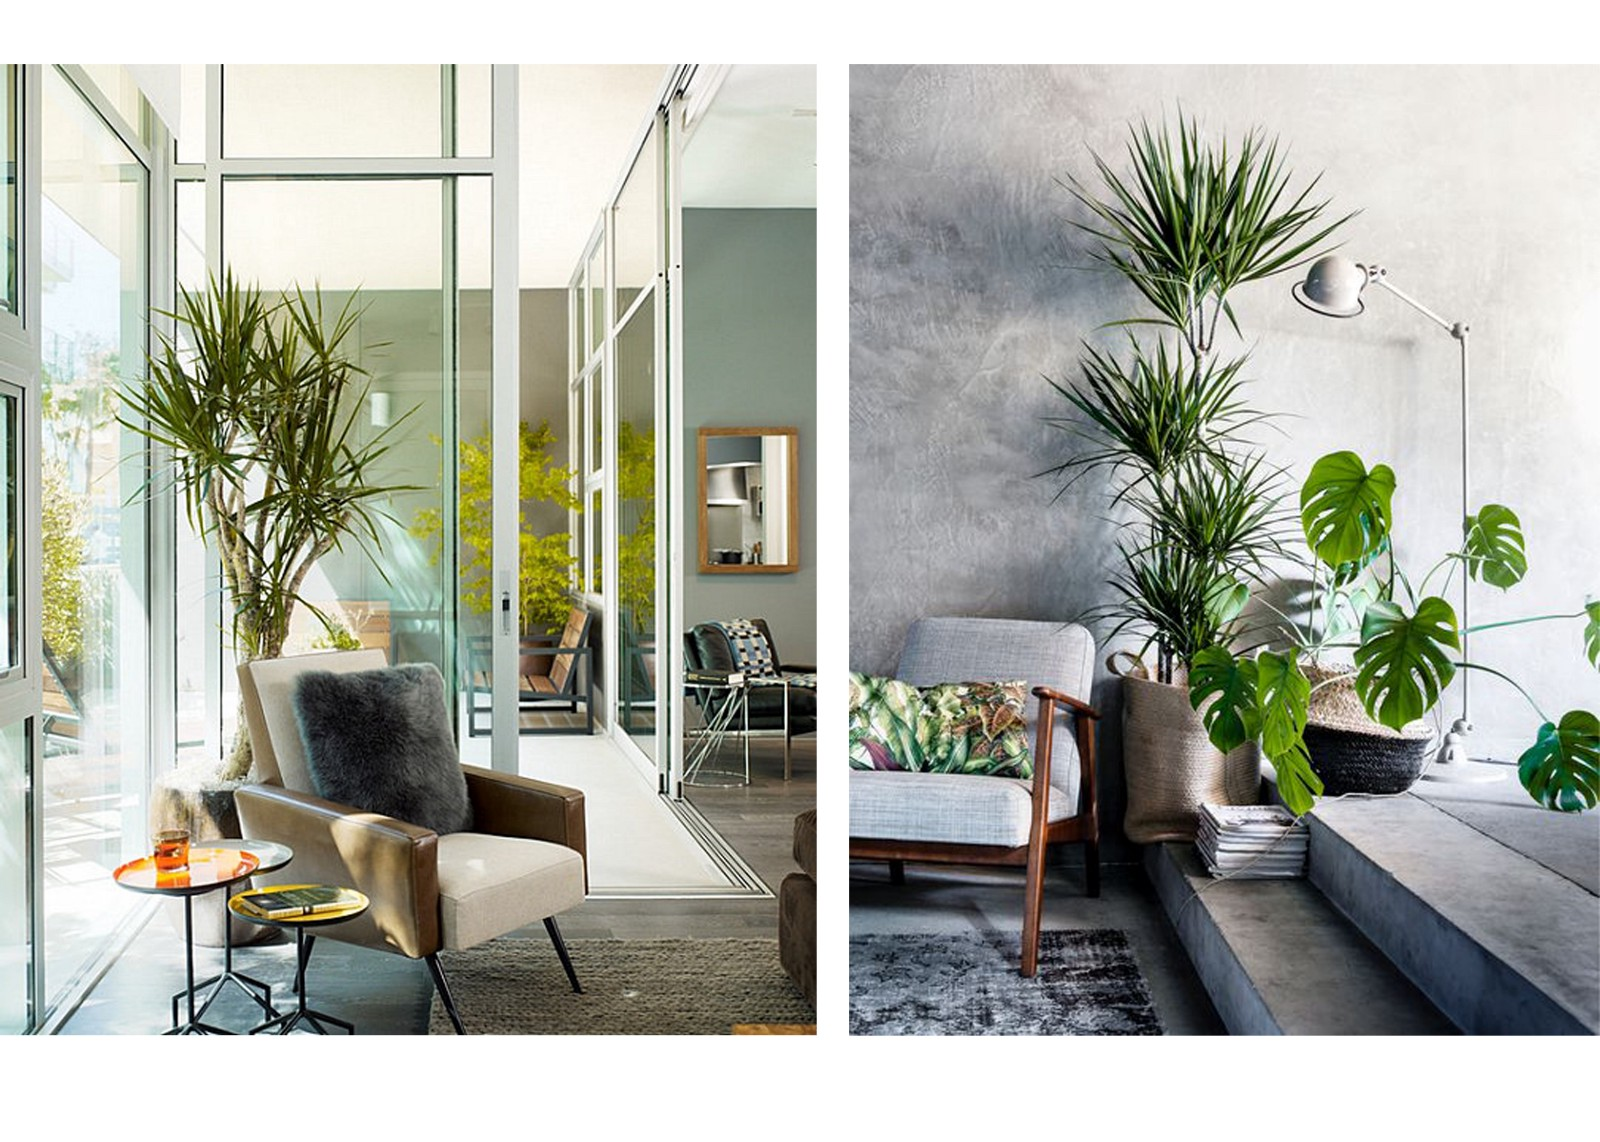 How To Use Plants In The Interior Basics Of Interior Design Medium